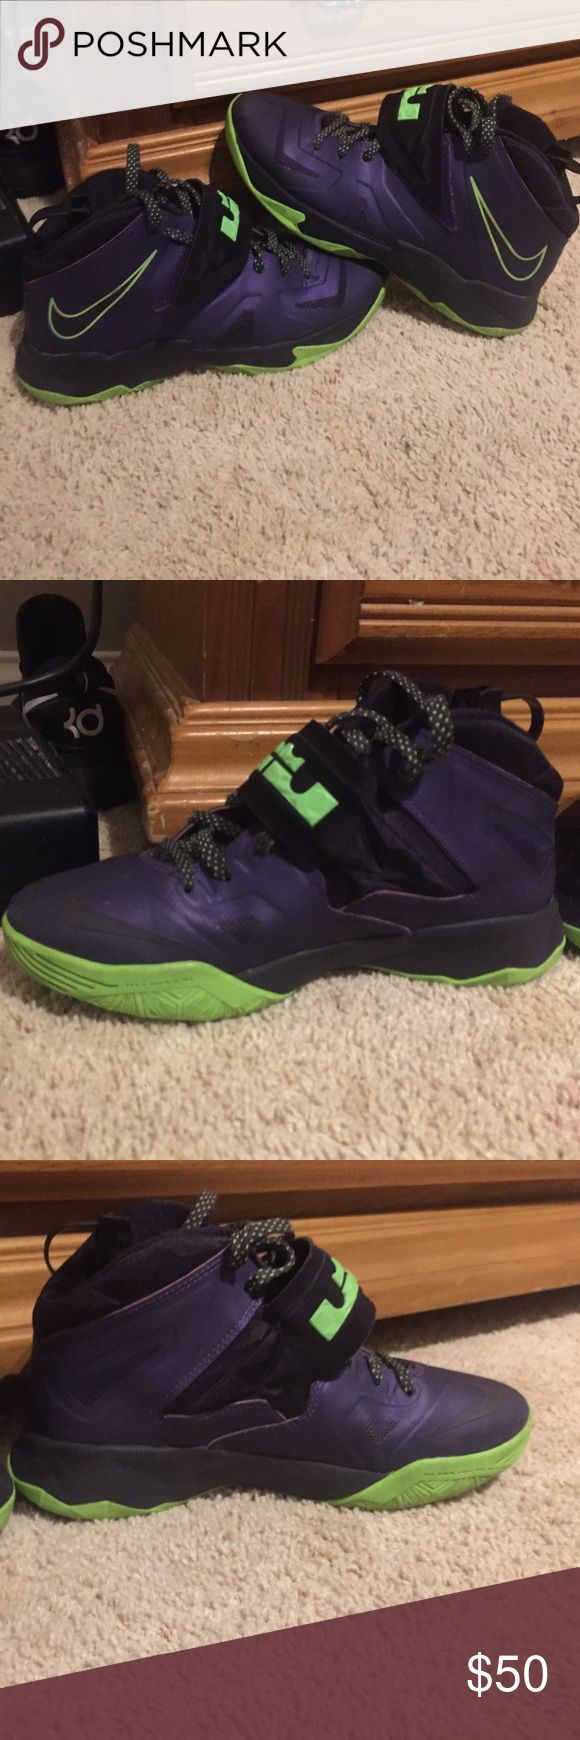 Lebron 7 grapes 9/10 condition. Bought them brand new then didn't like them, wore a few times Nike Shoes Athletic Shoes